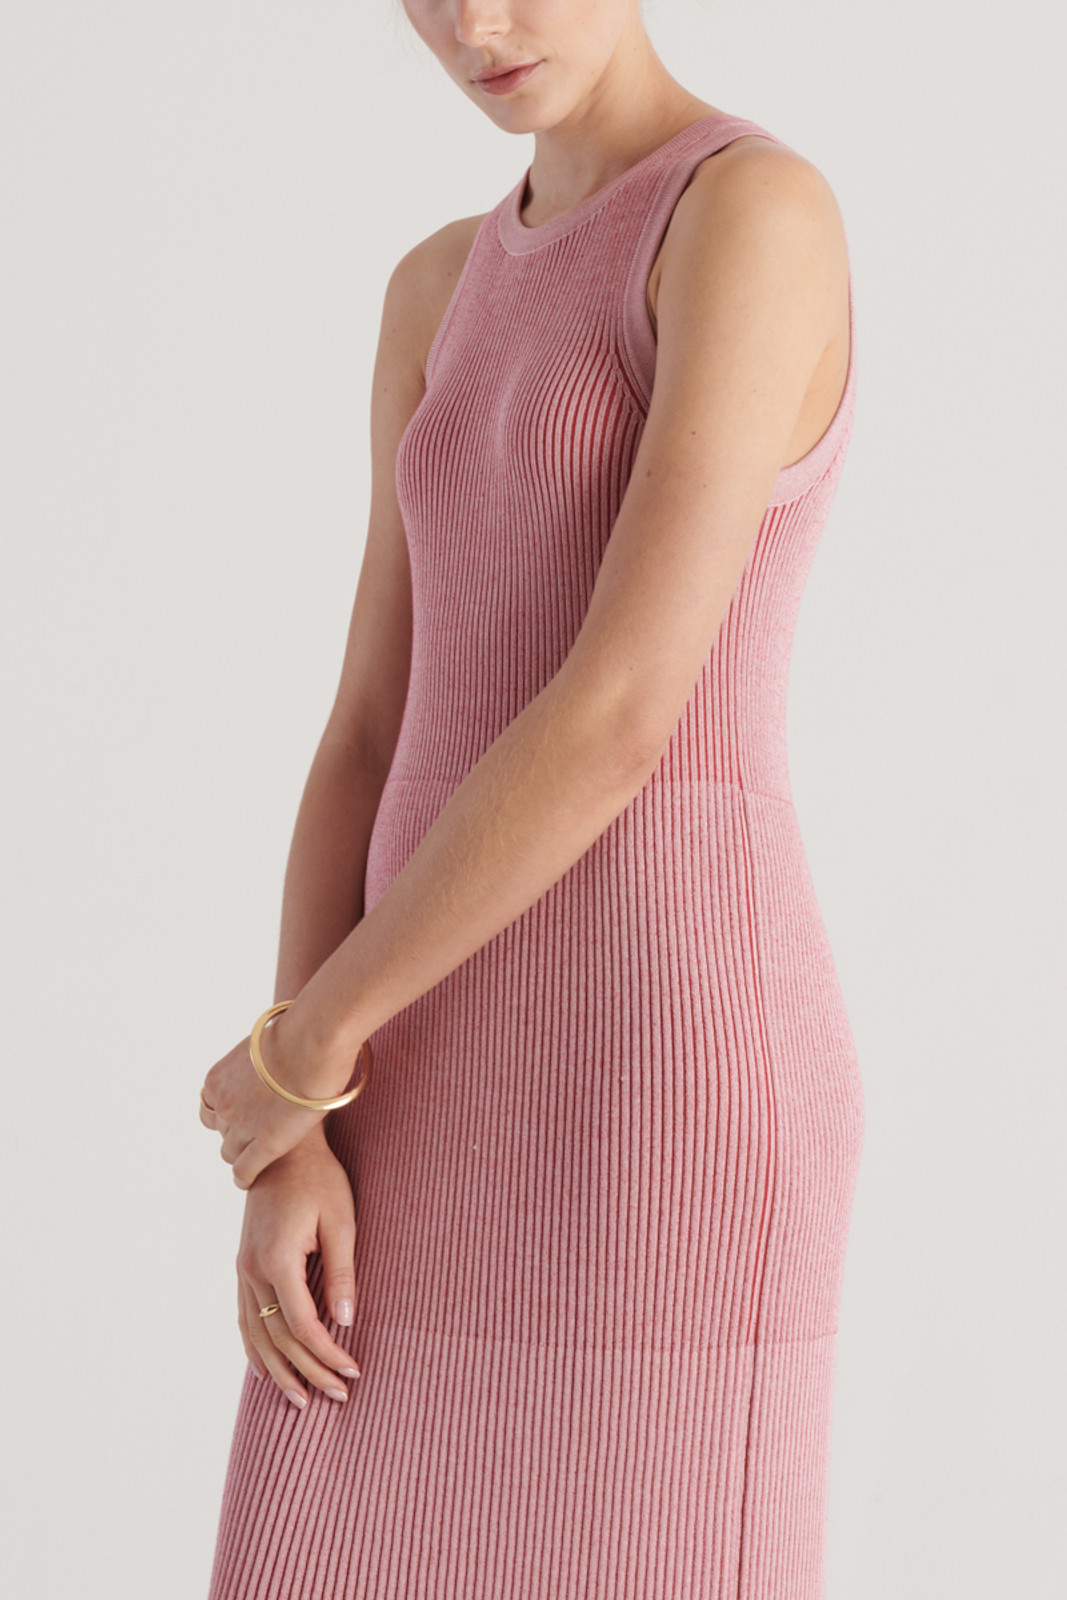 Elka Collective WomensStevie Knit Dress Pink/Red  5